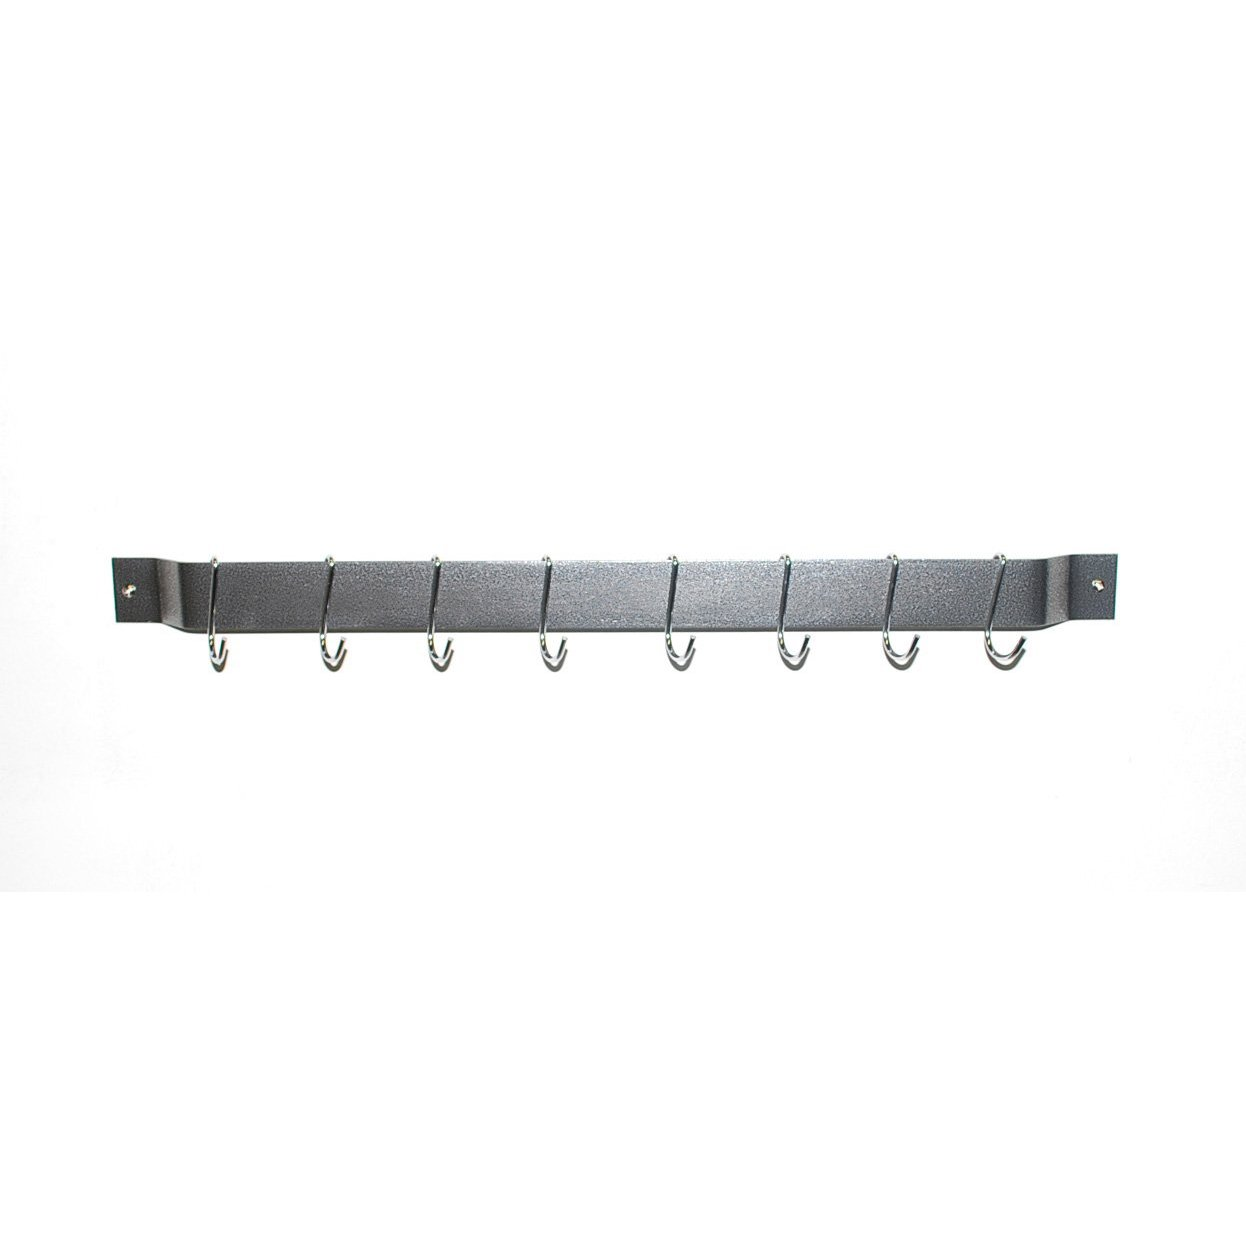 24″ x 2″ Hammered Steel Bar Rack